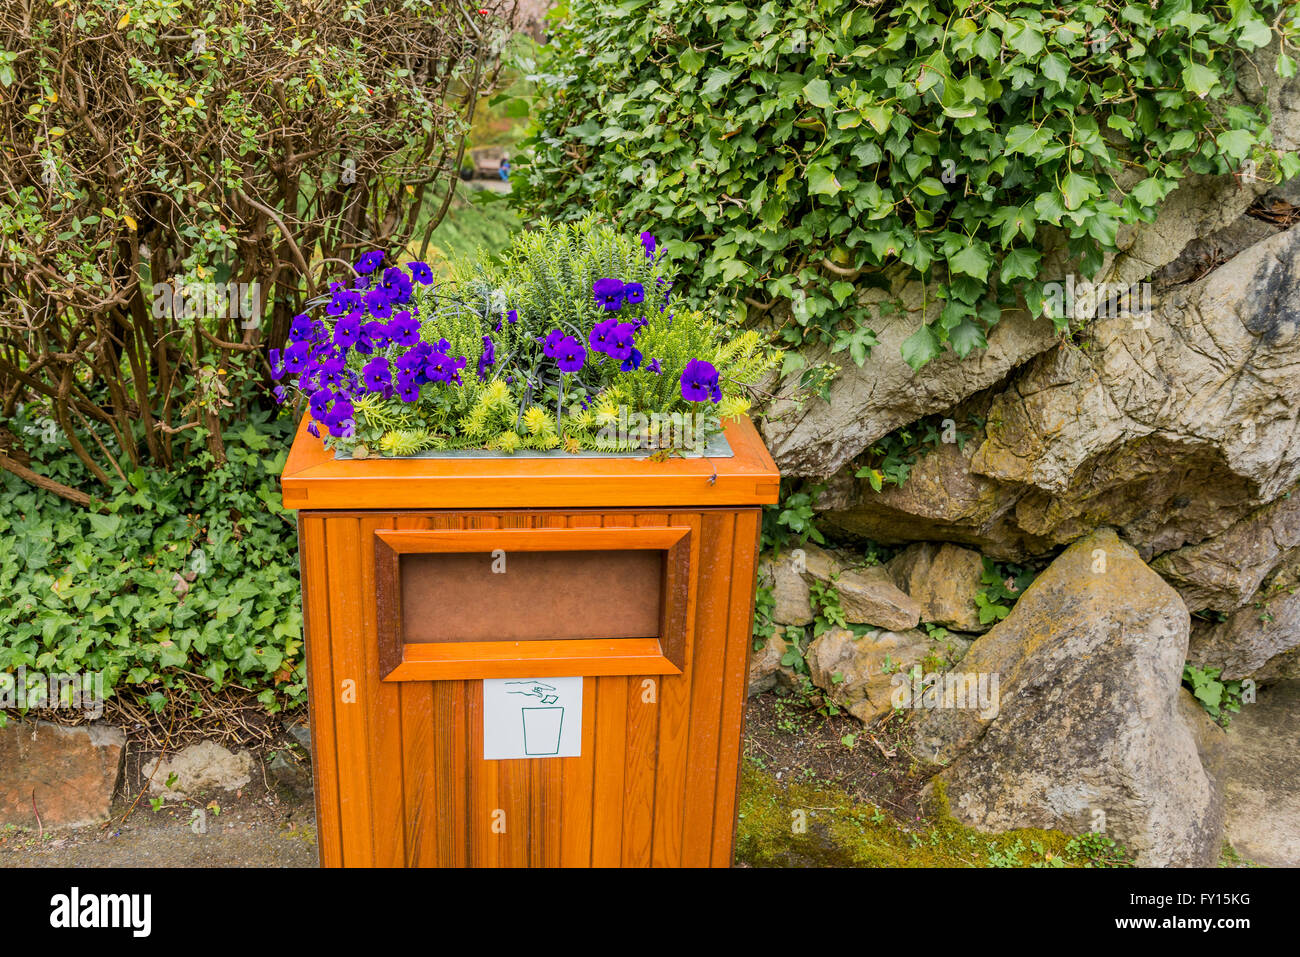 Litter bin with flower arrangement, Butchart Gardens, Brentwood Bay, near Victoria, British Columbia, Canada - Stock Image